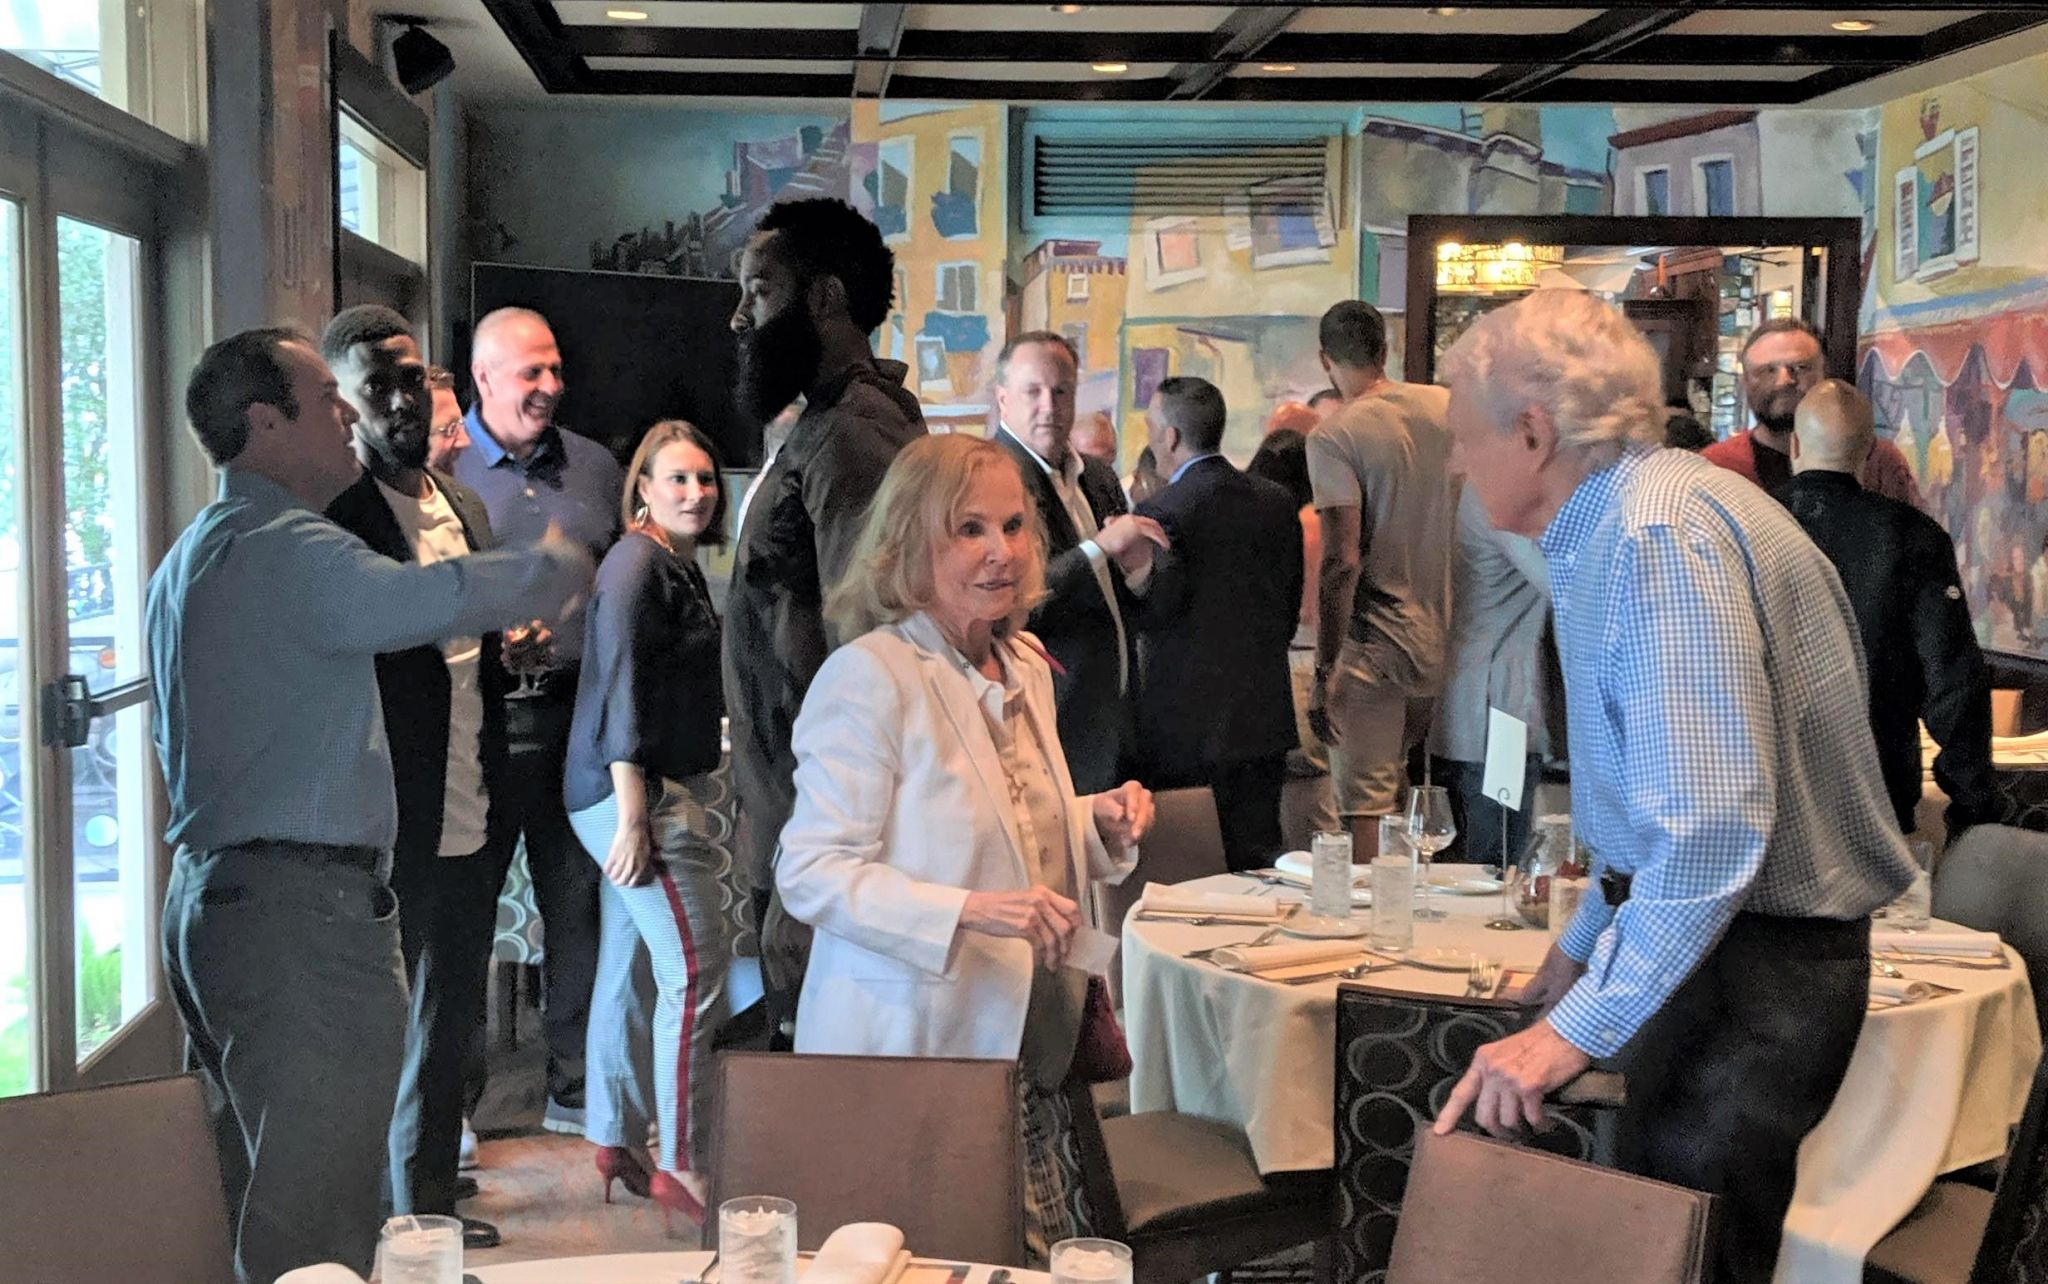 James Harden, Russell Westbrook head to La Griglia in River Oaks for charity luncheon